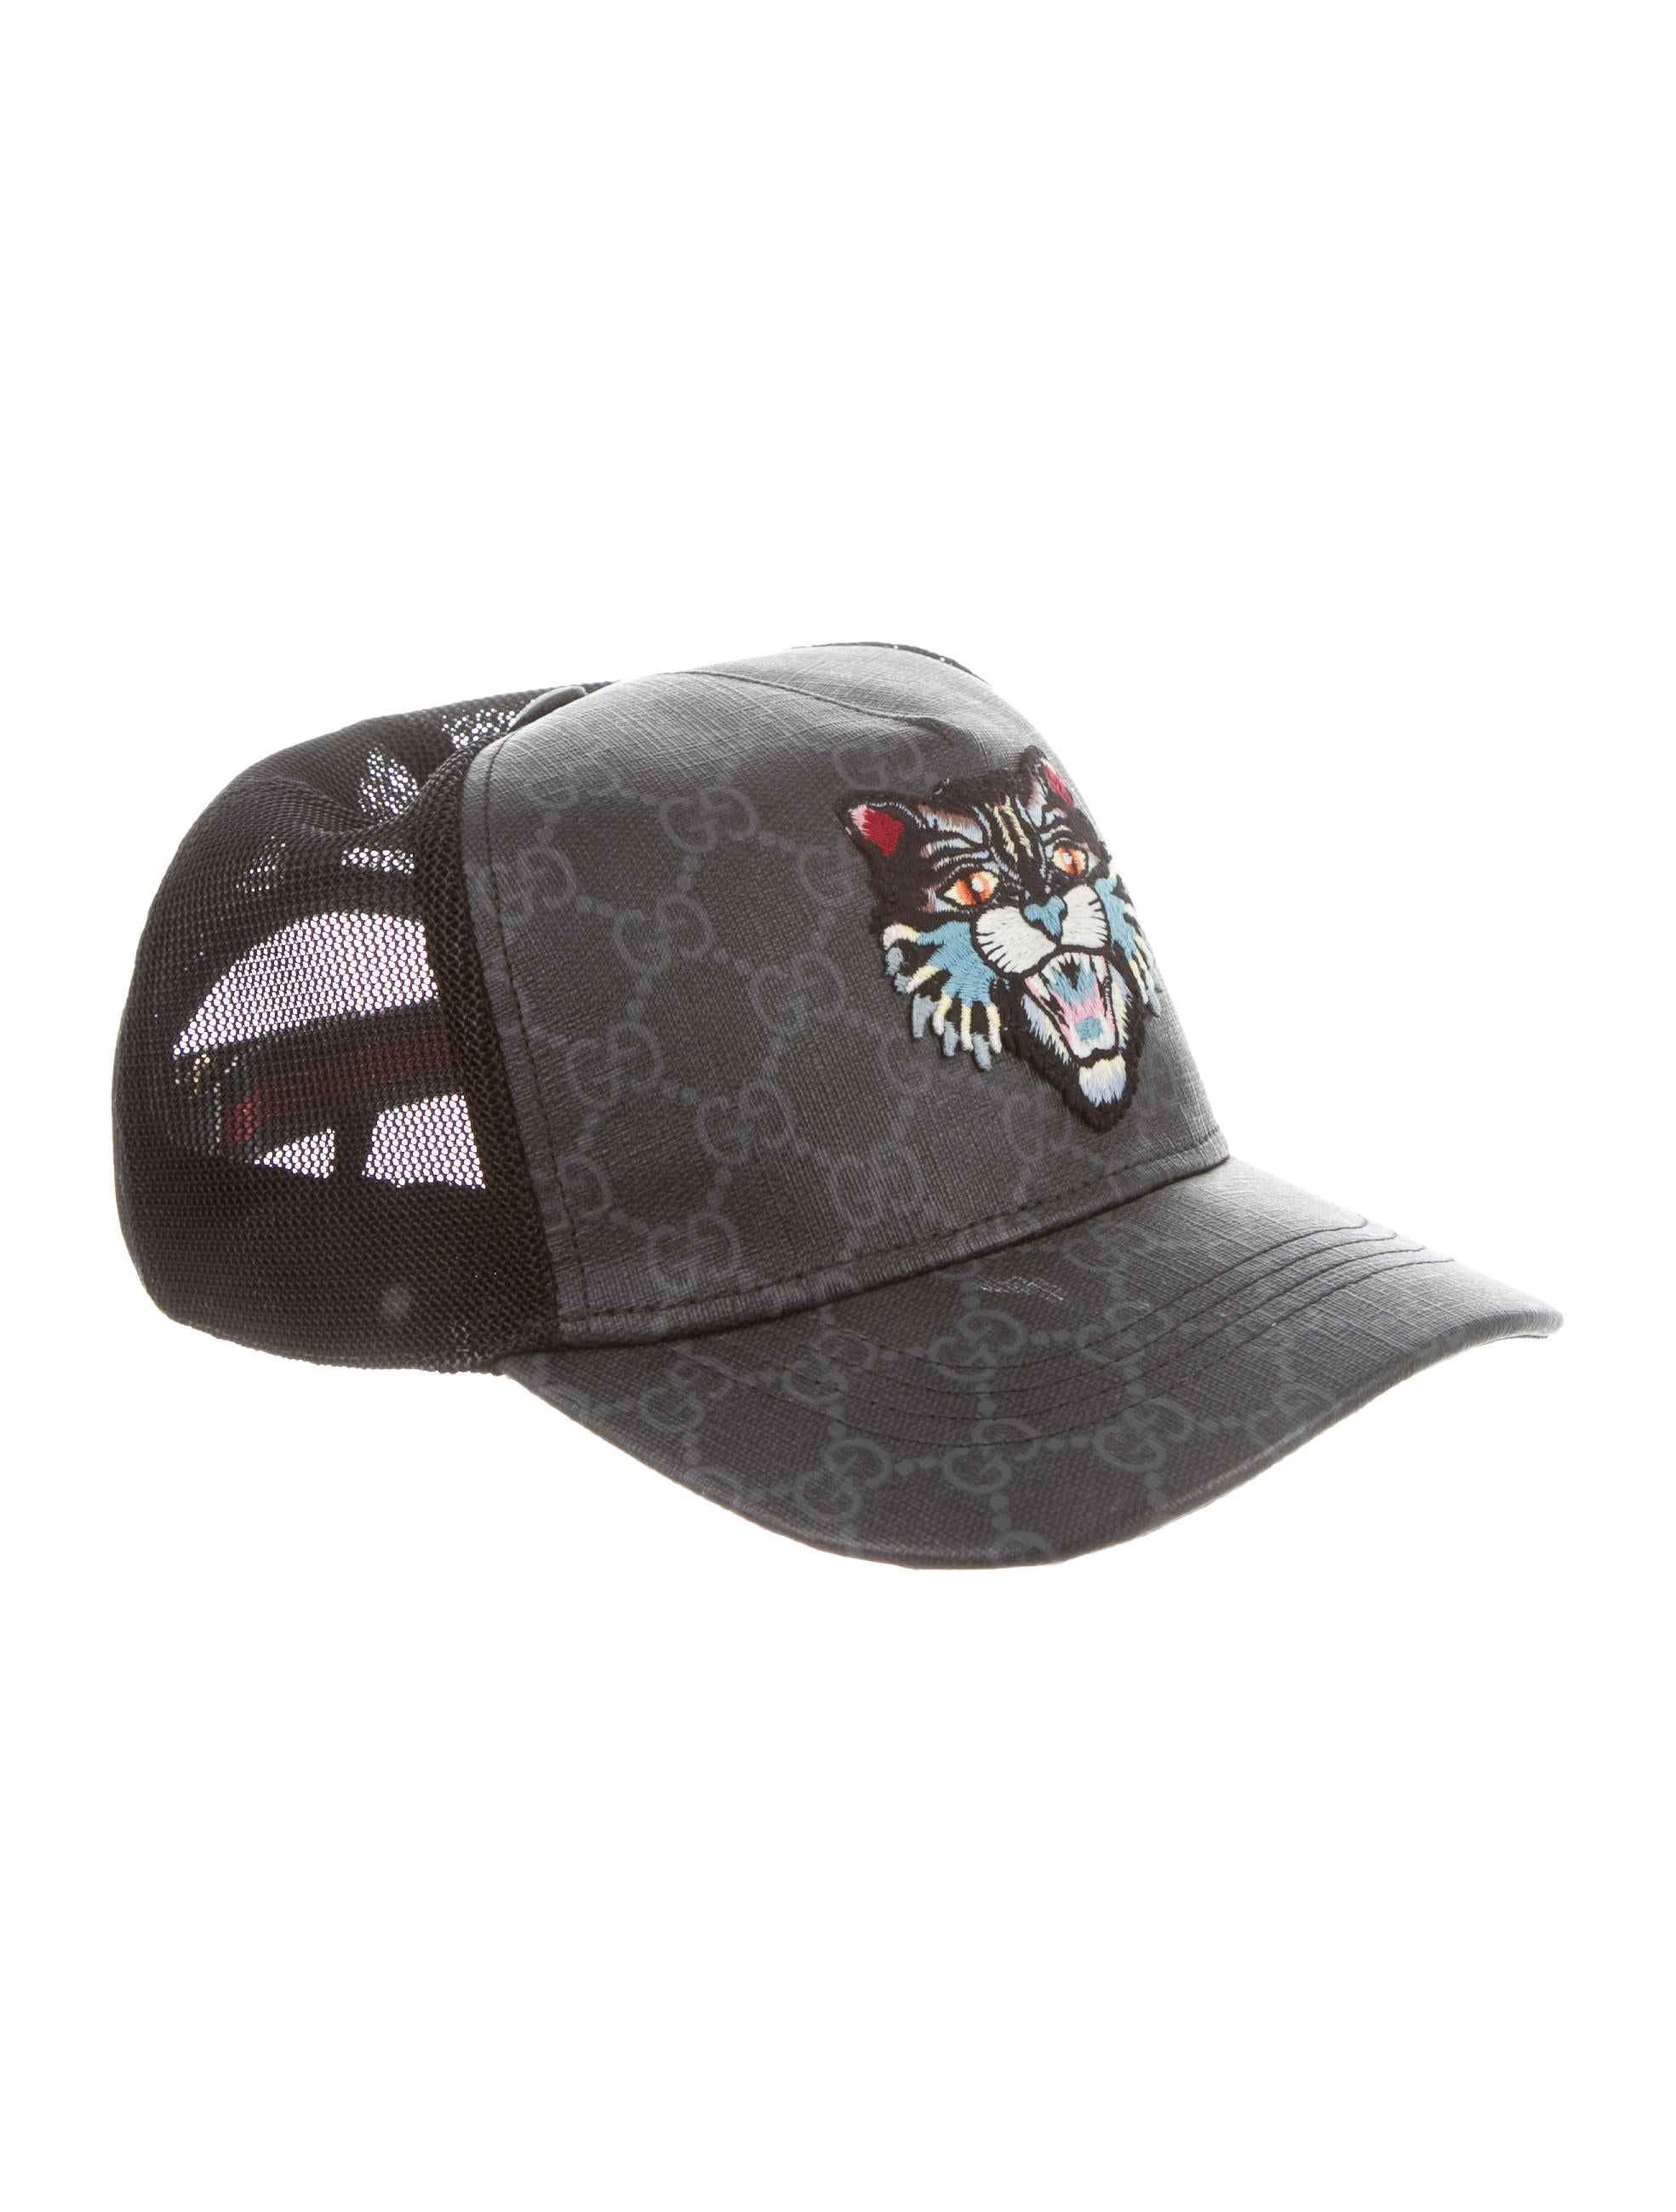 5a85648c29a Gucci GG Supreme Angry Cat Baseball Cap - Accessories - GUC262280 ...